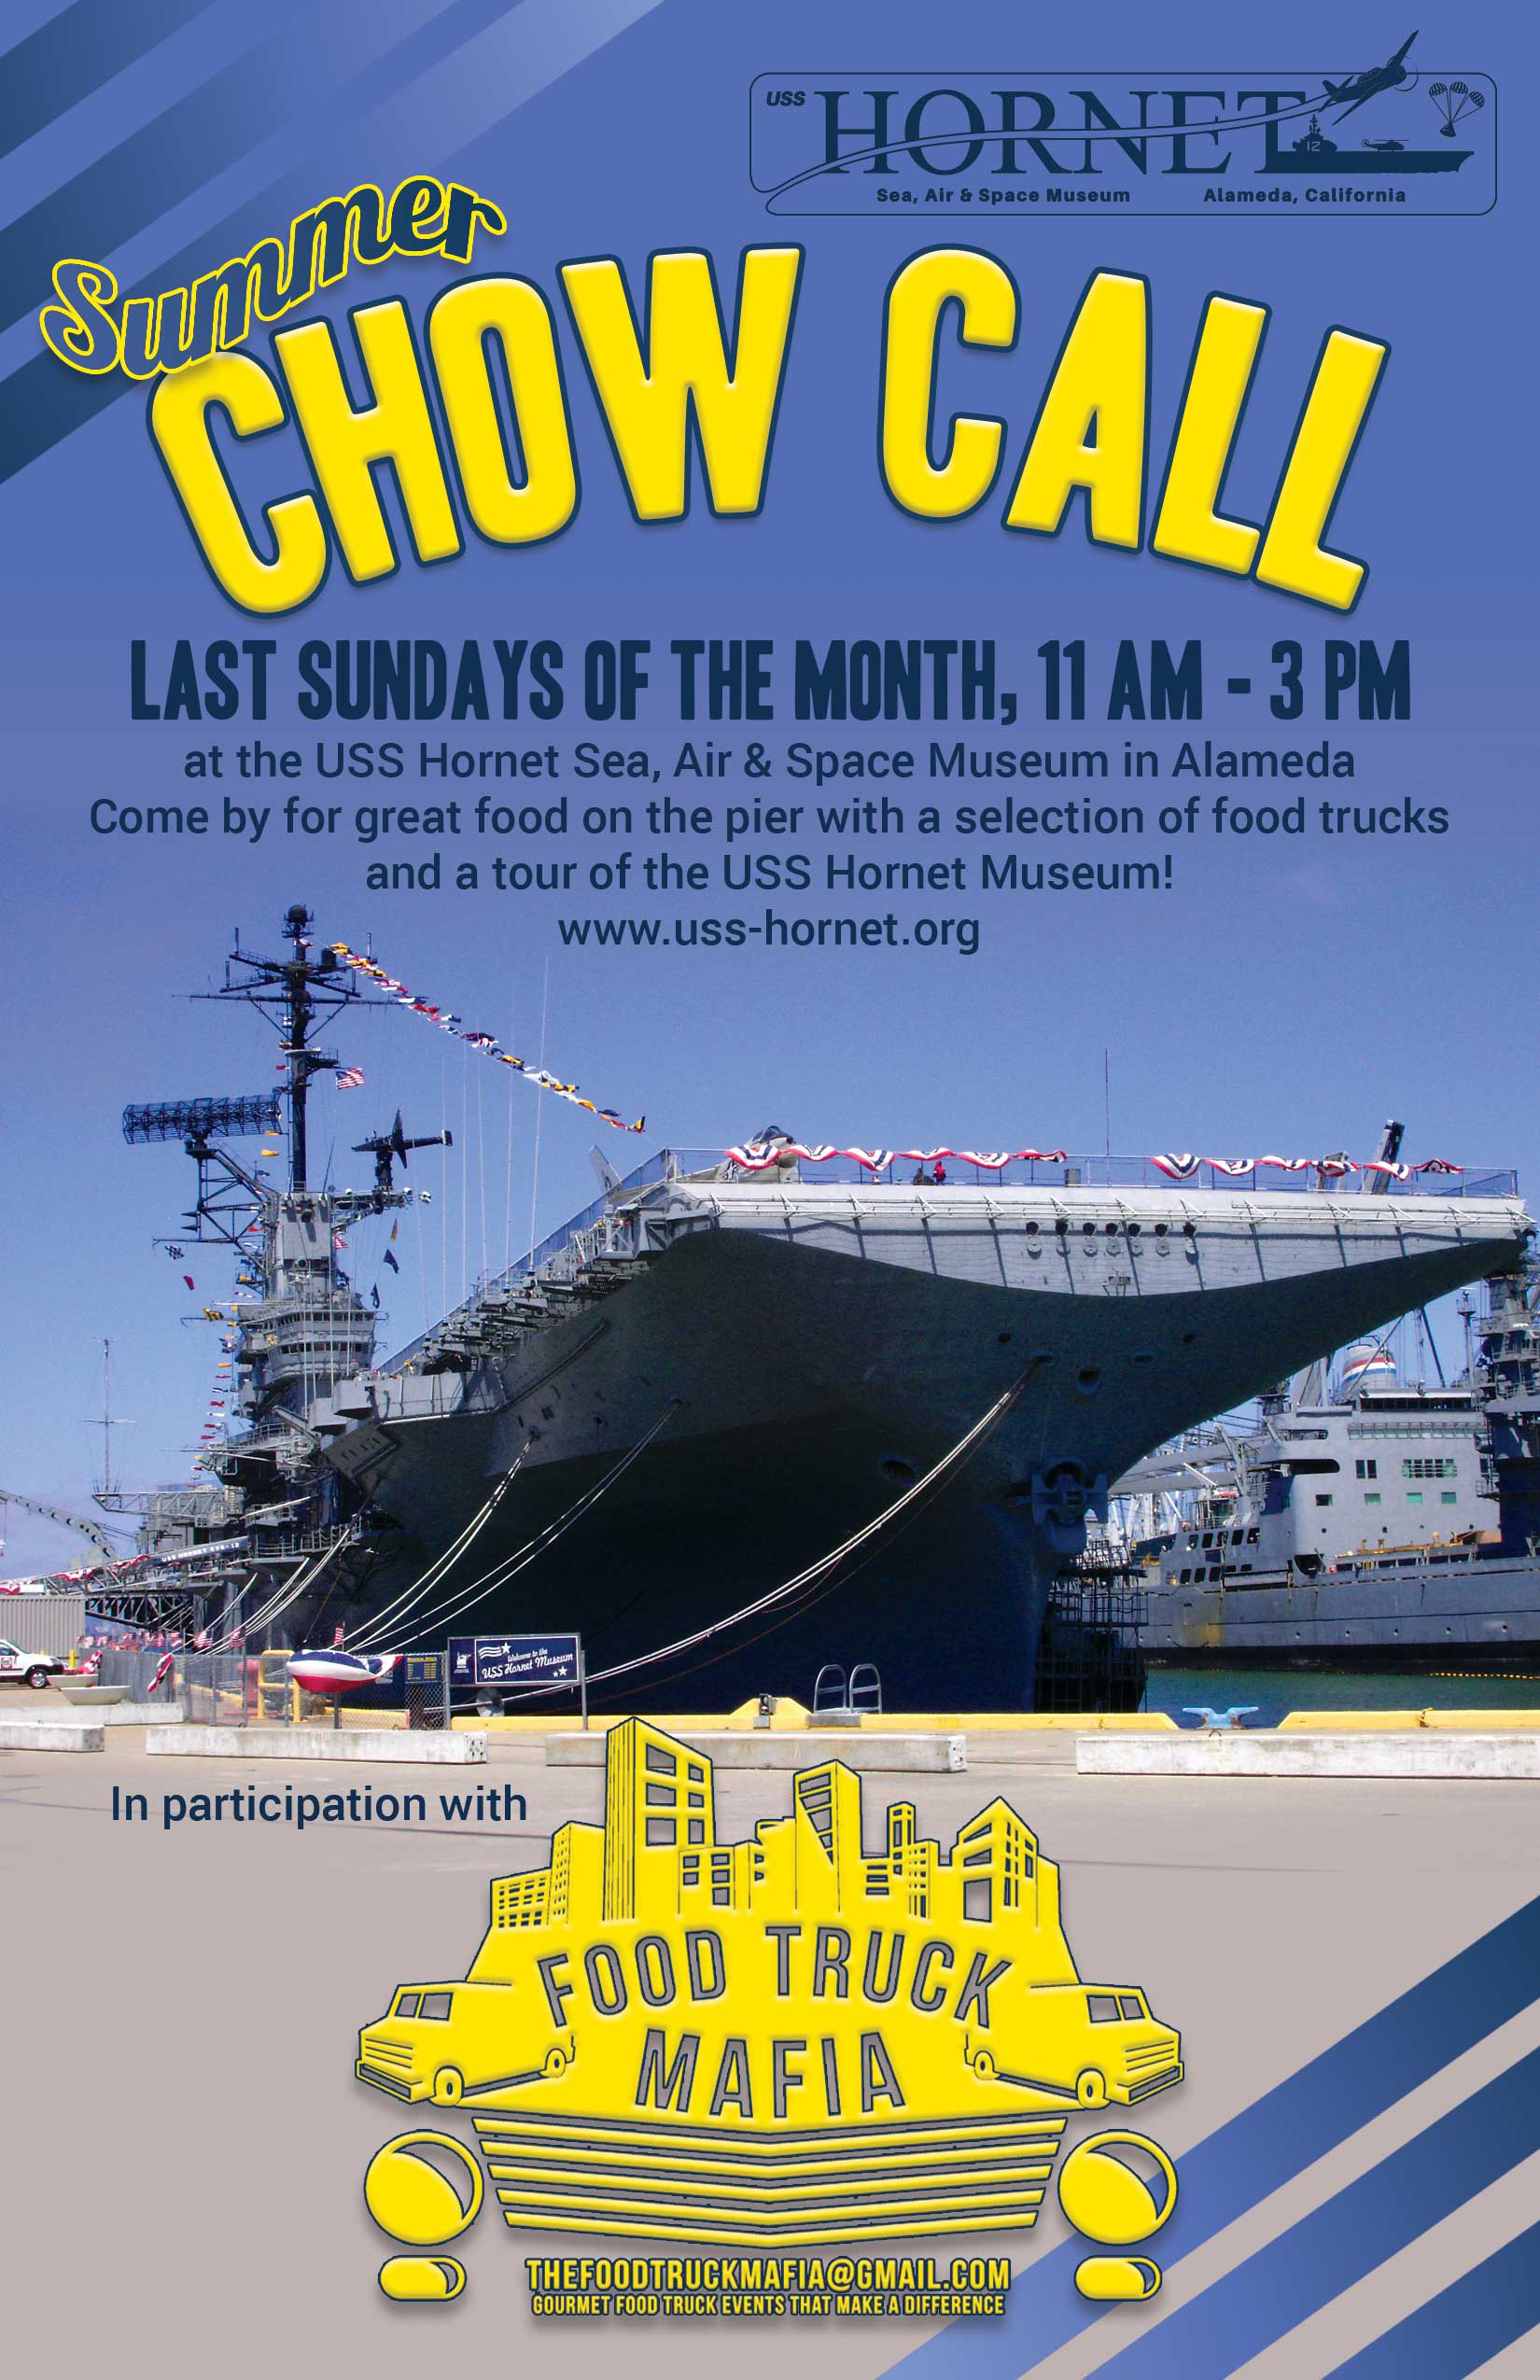 https://www.uss-hornet.org/wp-content/uploads/2018/04/Summer-Chow-Call.jpg